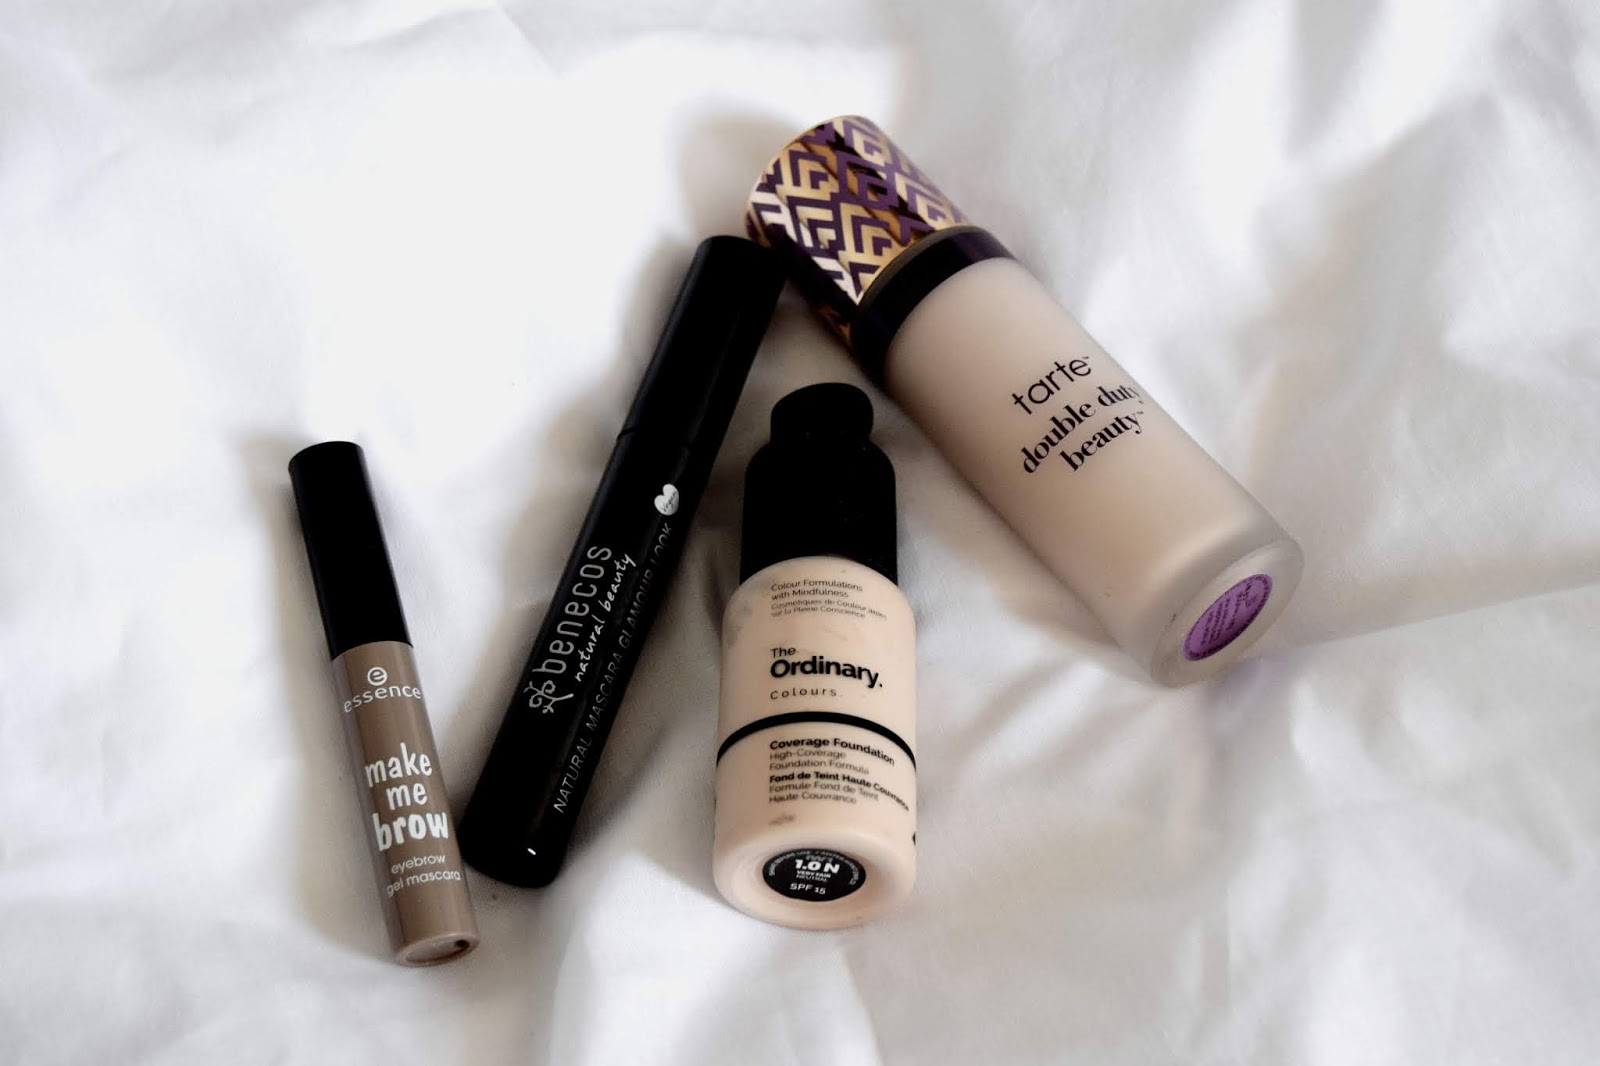 the green frog produits que je regrette d'avoir acheté déceptions makeup fond de teint the ordinary haute couverance fond de teint shape tape matte tarte essence mascara à sourcils make me brow mascara natural glamour look benecos